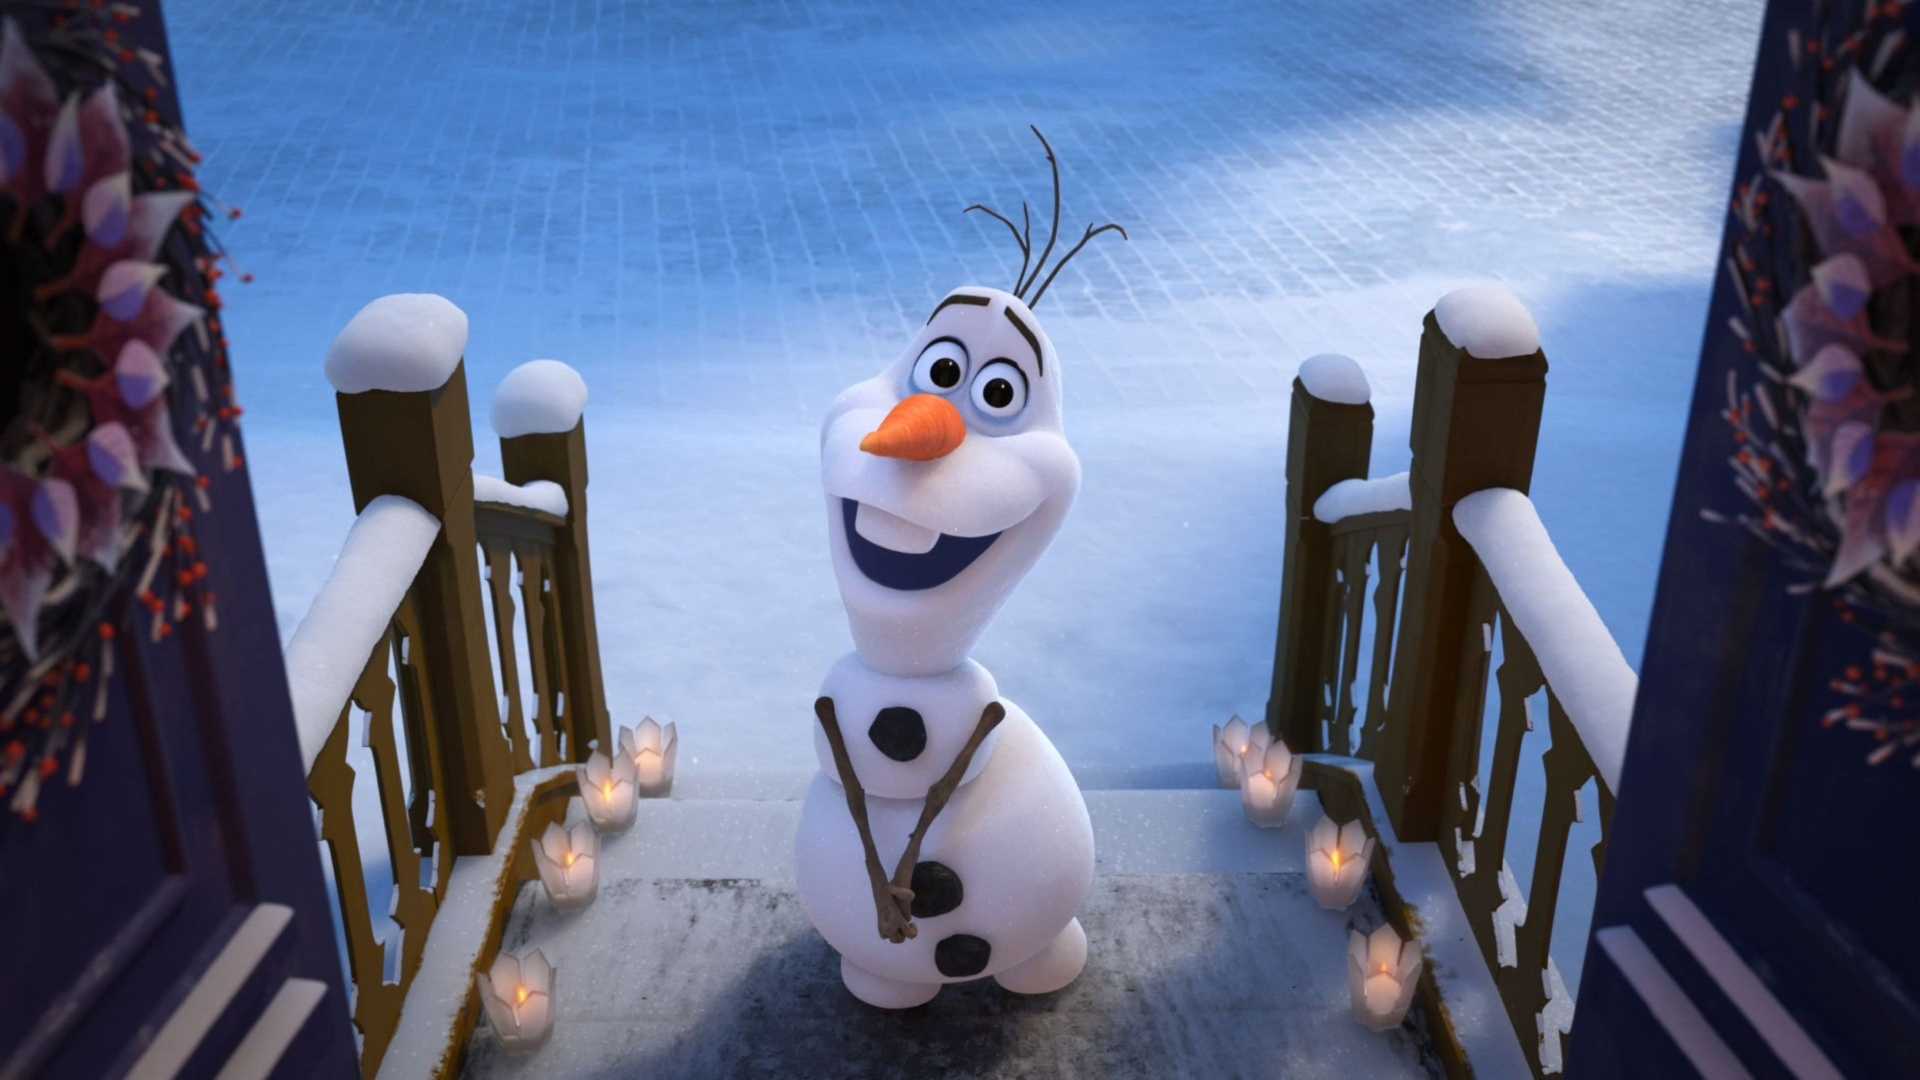 This Kid Singing 'Let it Go' in Full 'Frozen' Costume in the Snow is Everything